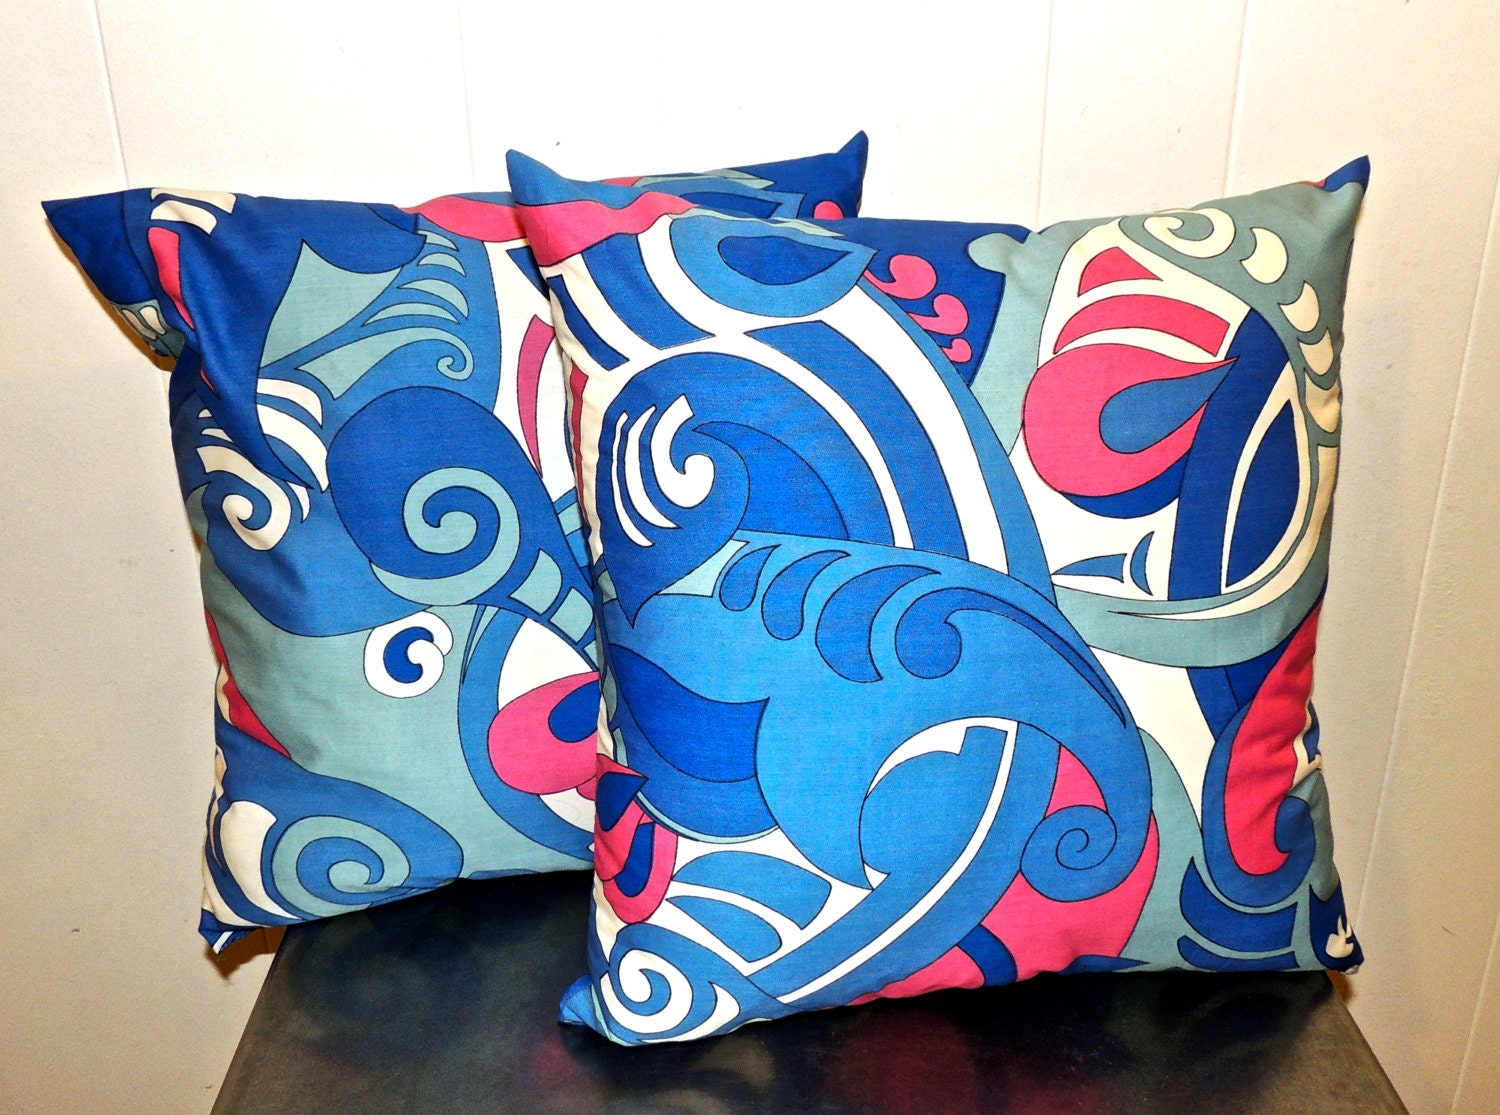 Vintage Blue Throw Pillows : vintage blue mod throw pillows 1960s mid century abstract